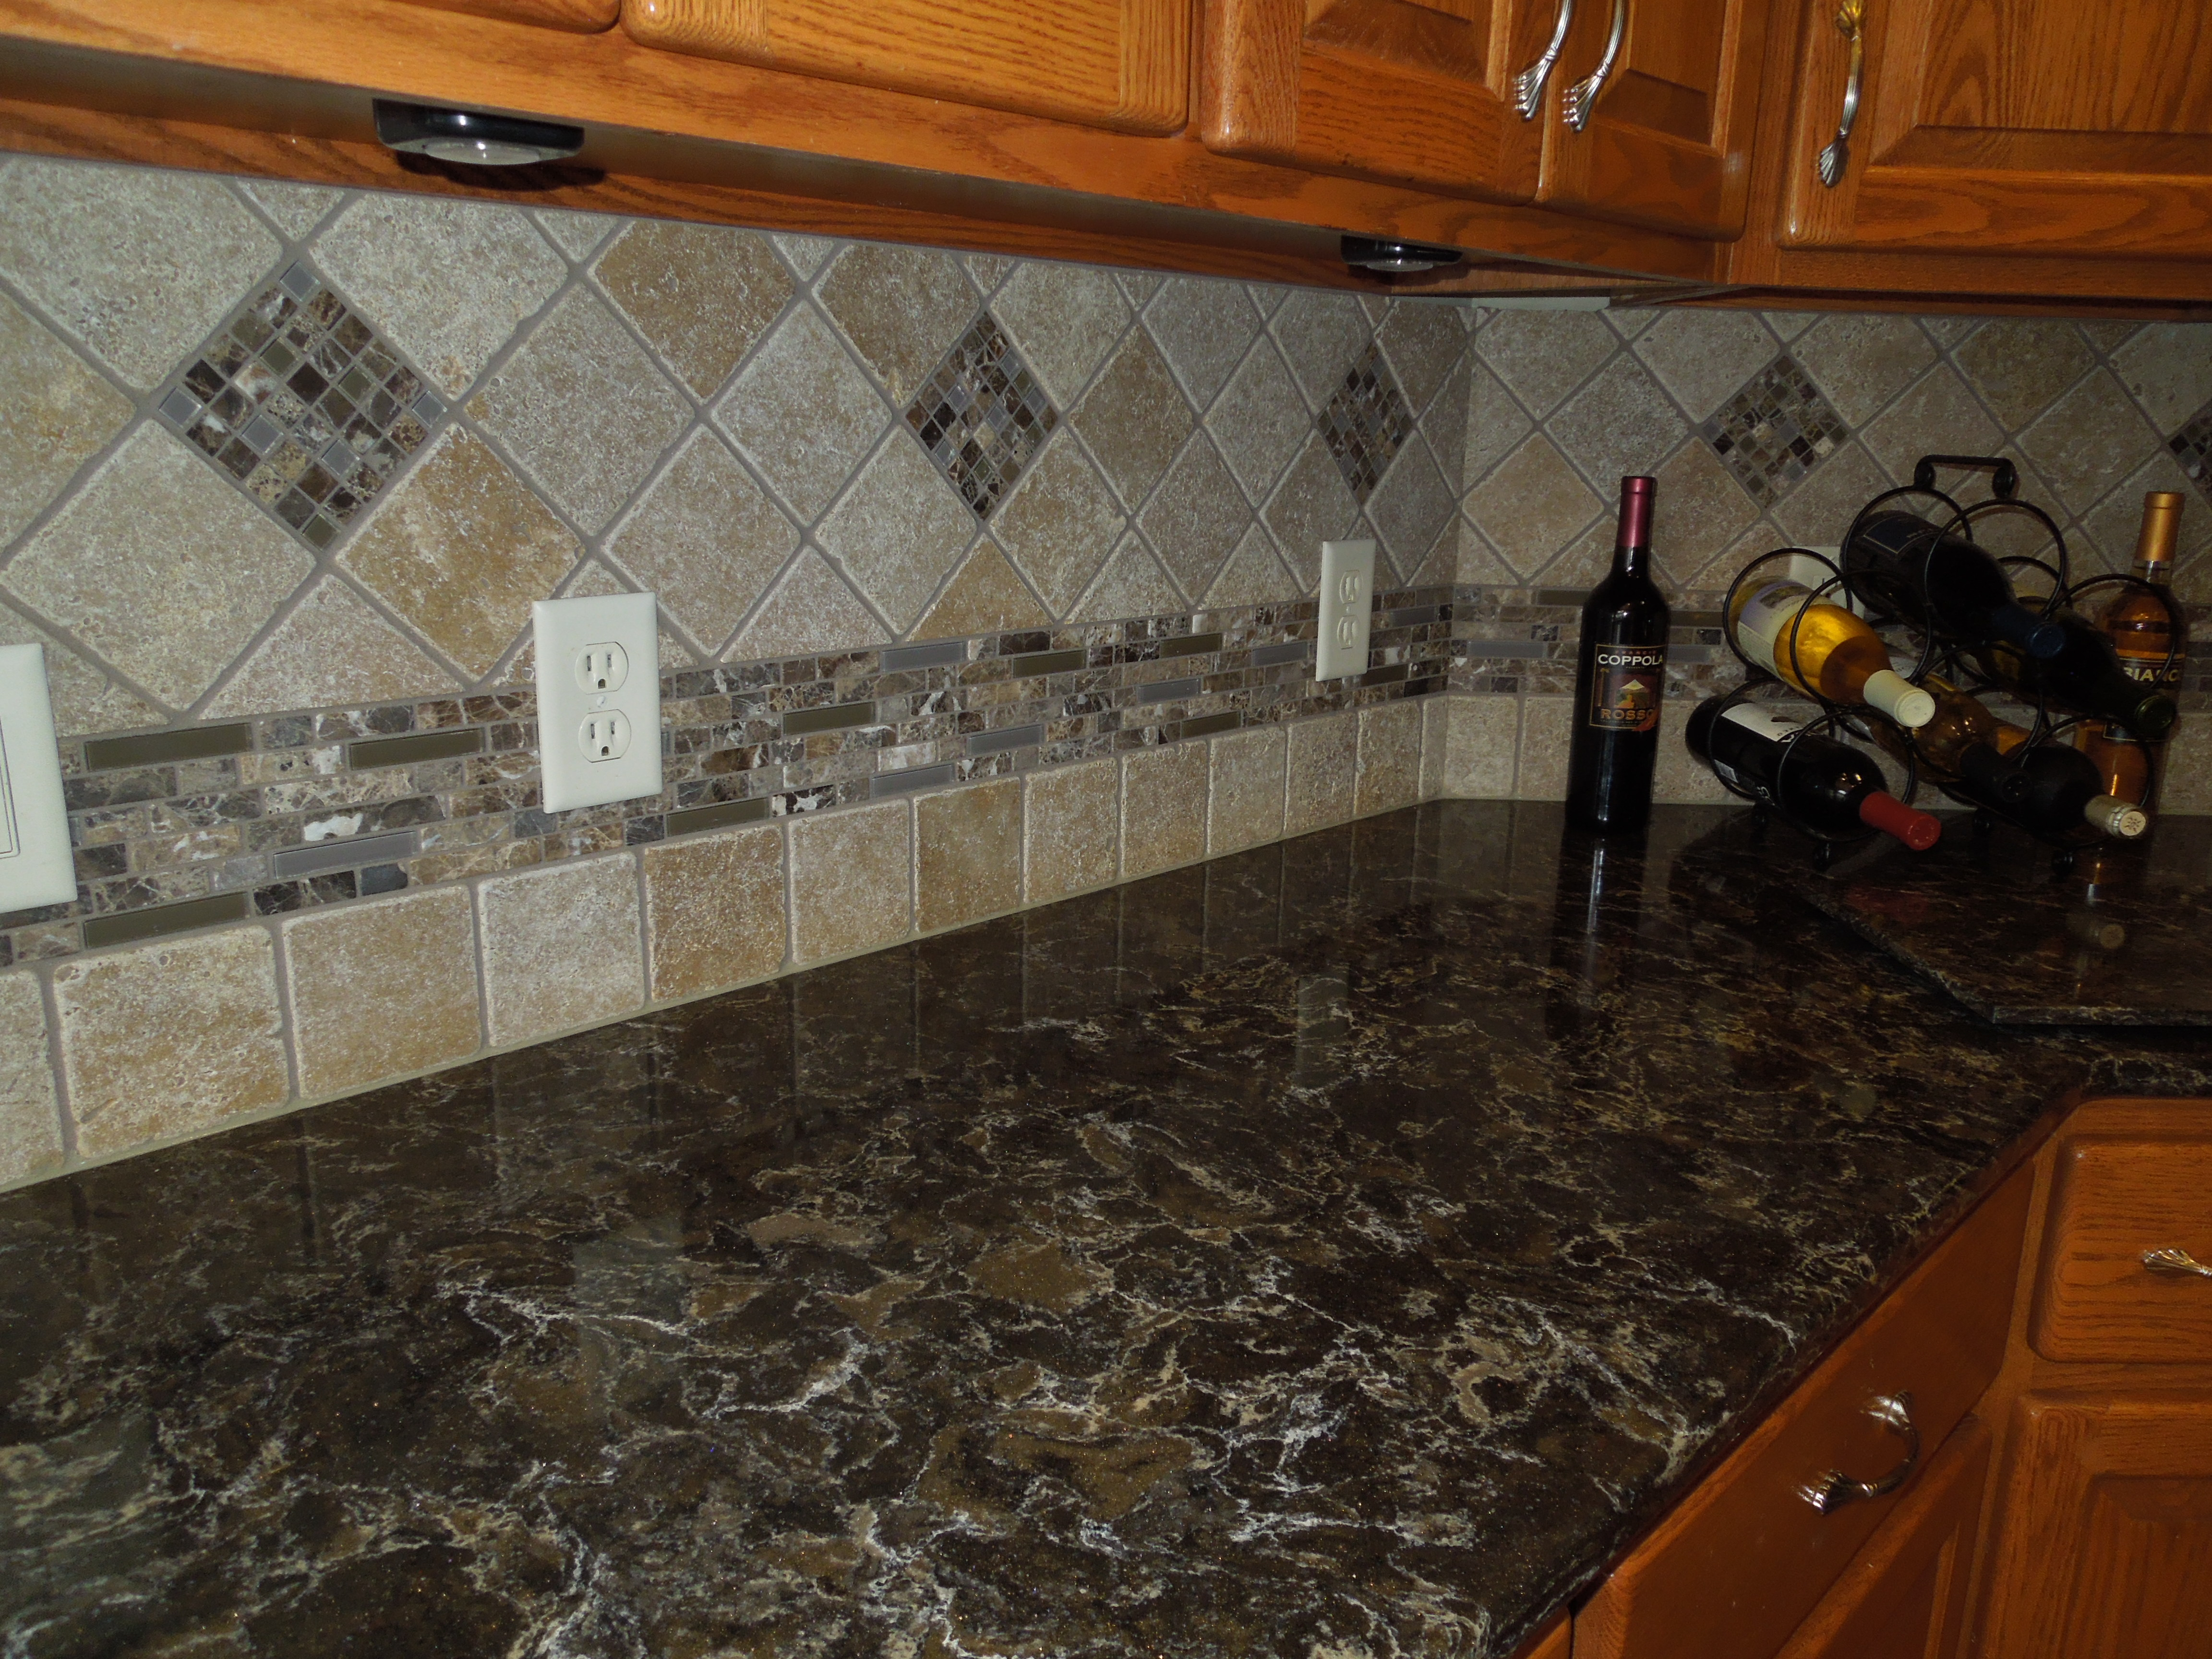 Cambria Laneshaw Beautifies This Kitchen - Creative Surfaces Blog